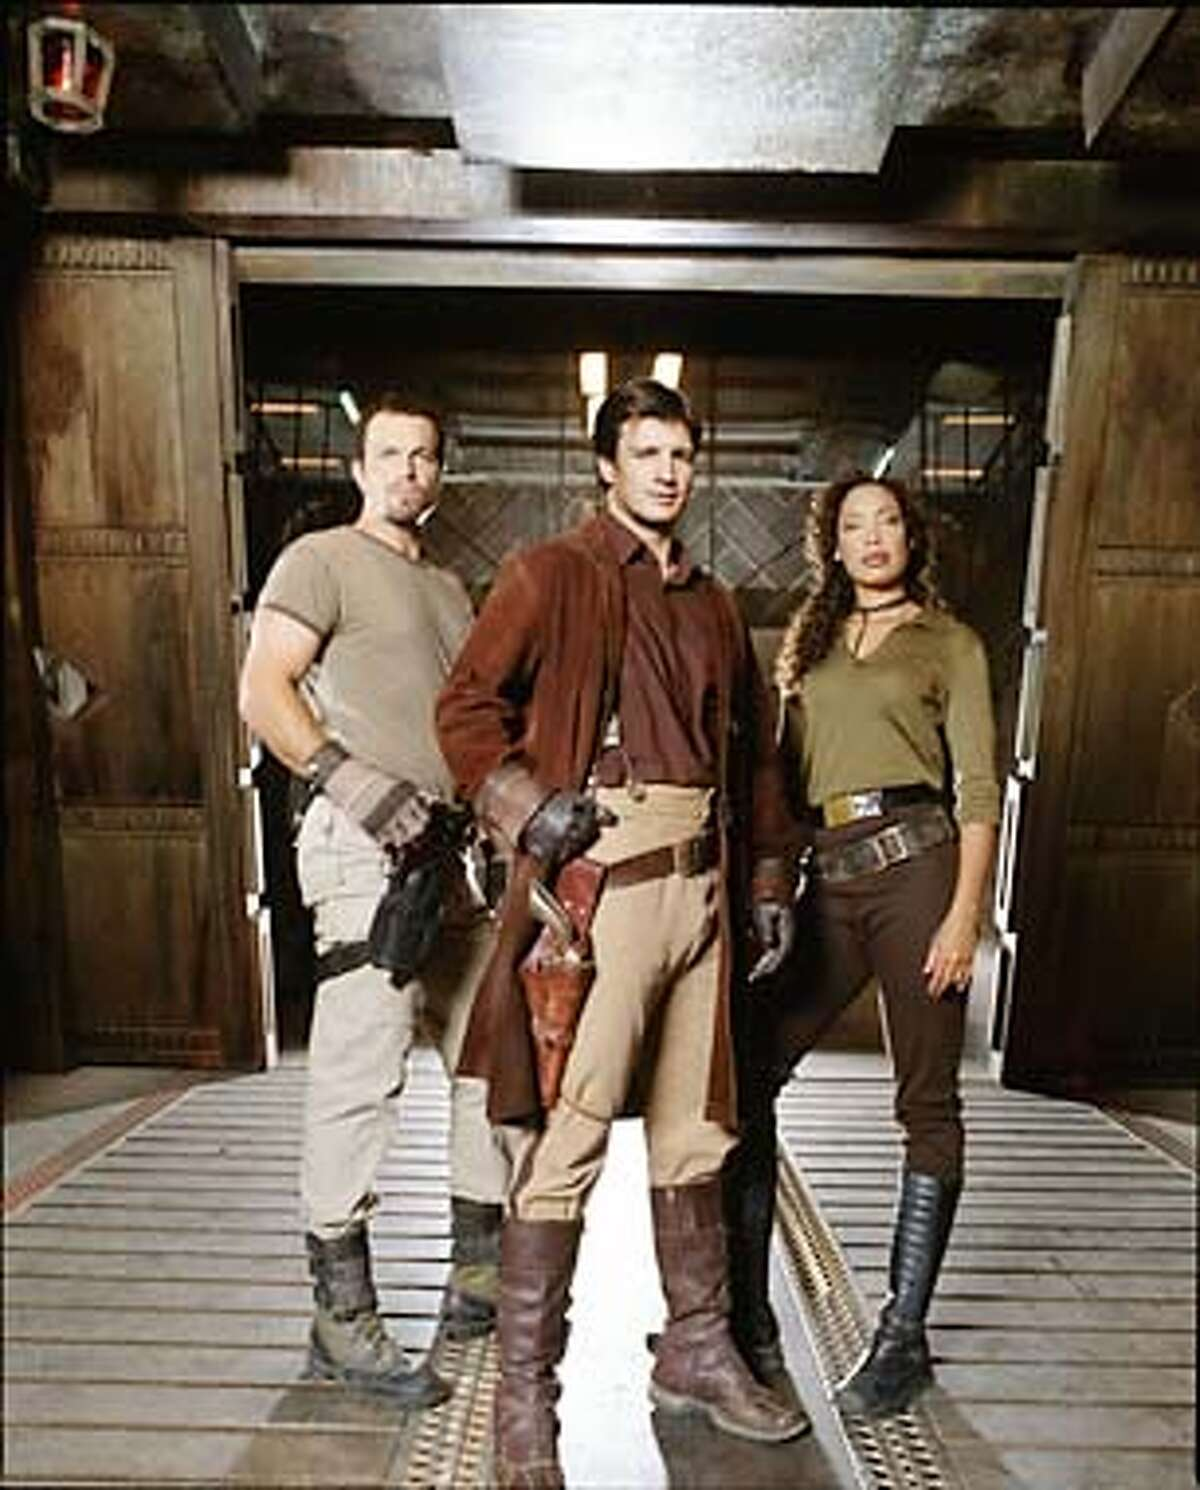 L-R: Adam Balwin, Nathan Fillion and Gina Torres star in the new one-hour sci-fi adventure series FIREFLY premiering Friday, Sep. 20 (9:00-10:00 PM ET/PT) on FOX. ��2002FOX BROADCASTING CR:Michael Lavine/FOX